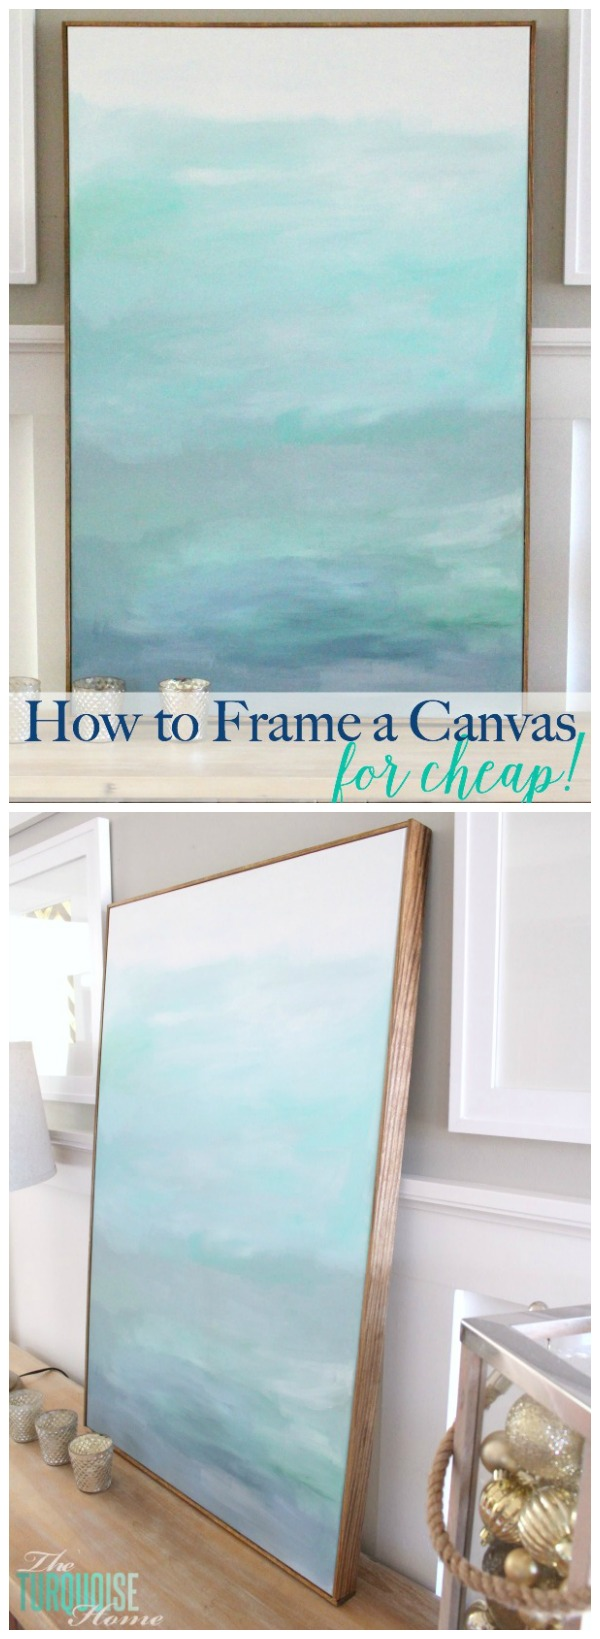 Cheap Wall Canvas Prints Idea Such An Easy And Cheap Way Frame A Canvas It Makes A 22 DIY Art